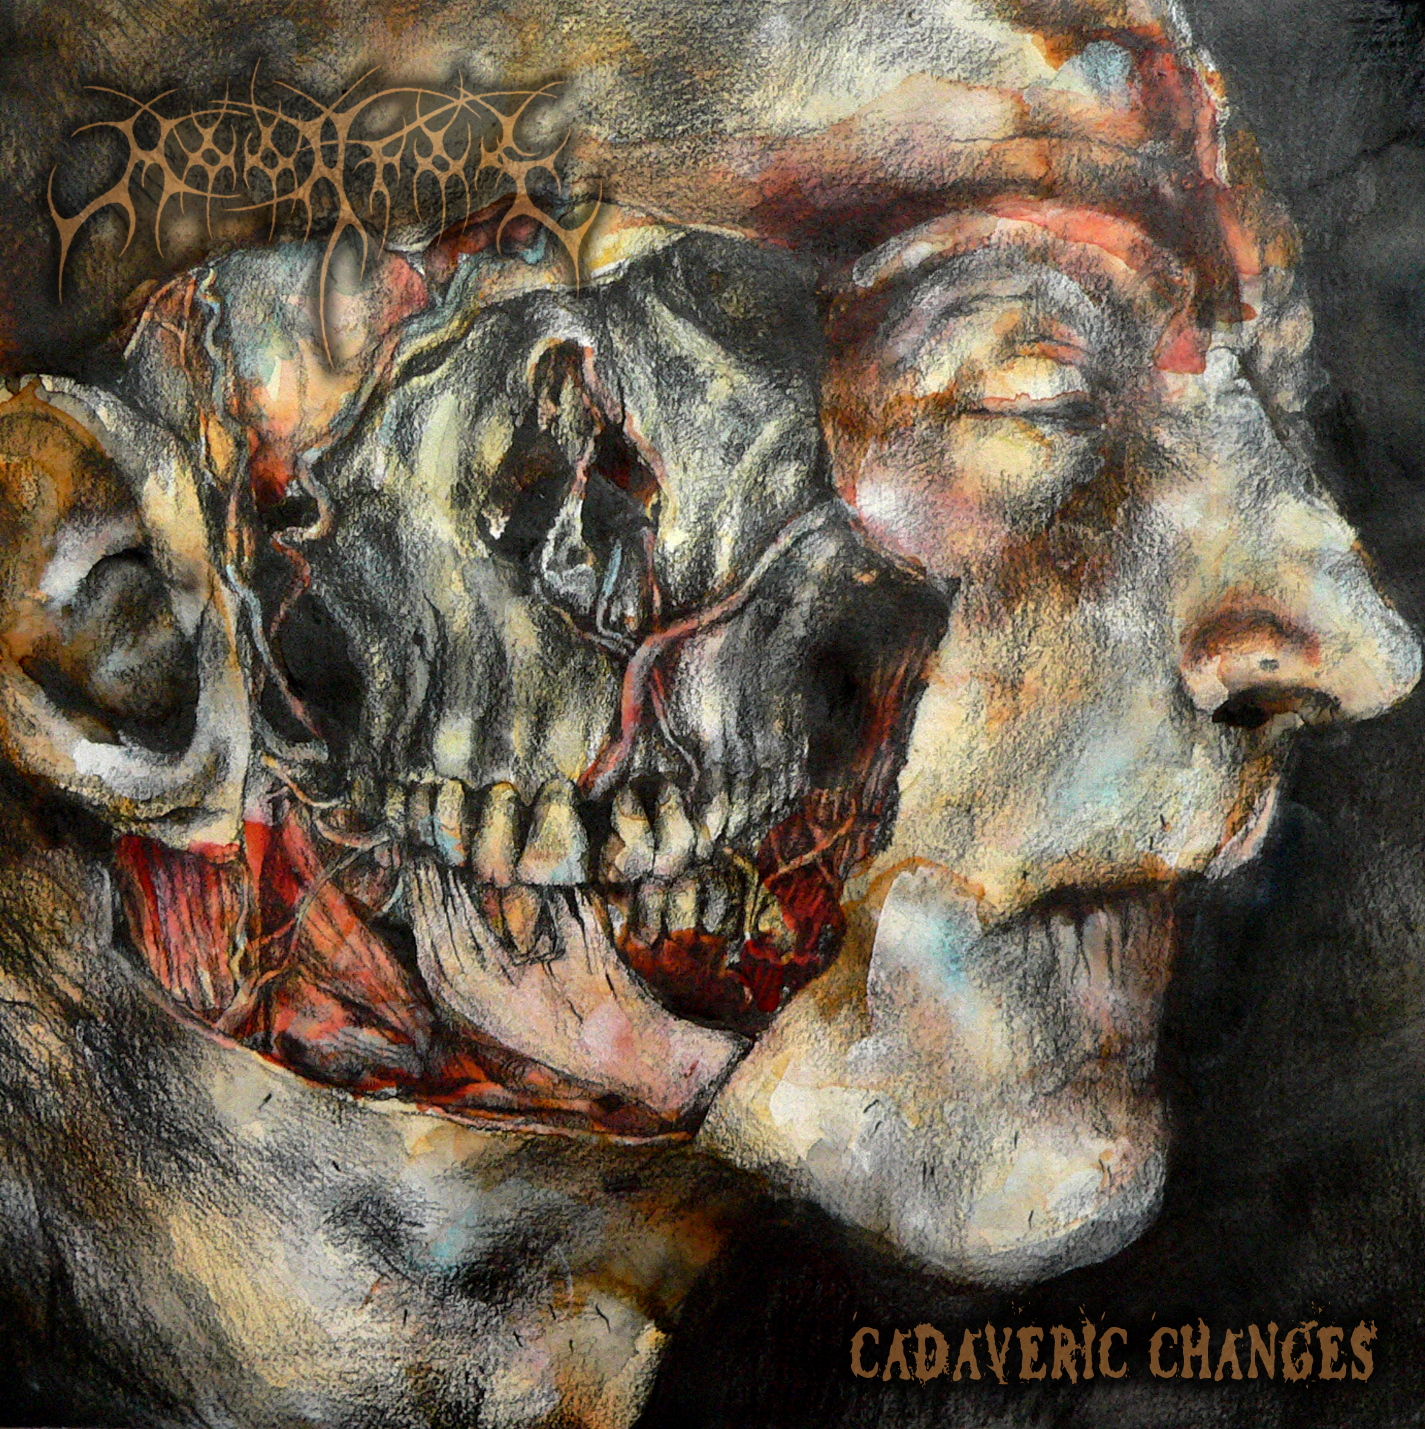 MOONFOG Cadaveric Changes